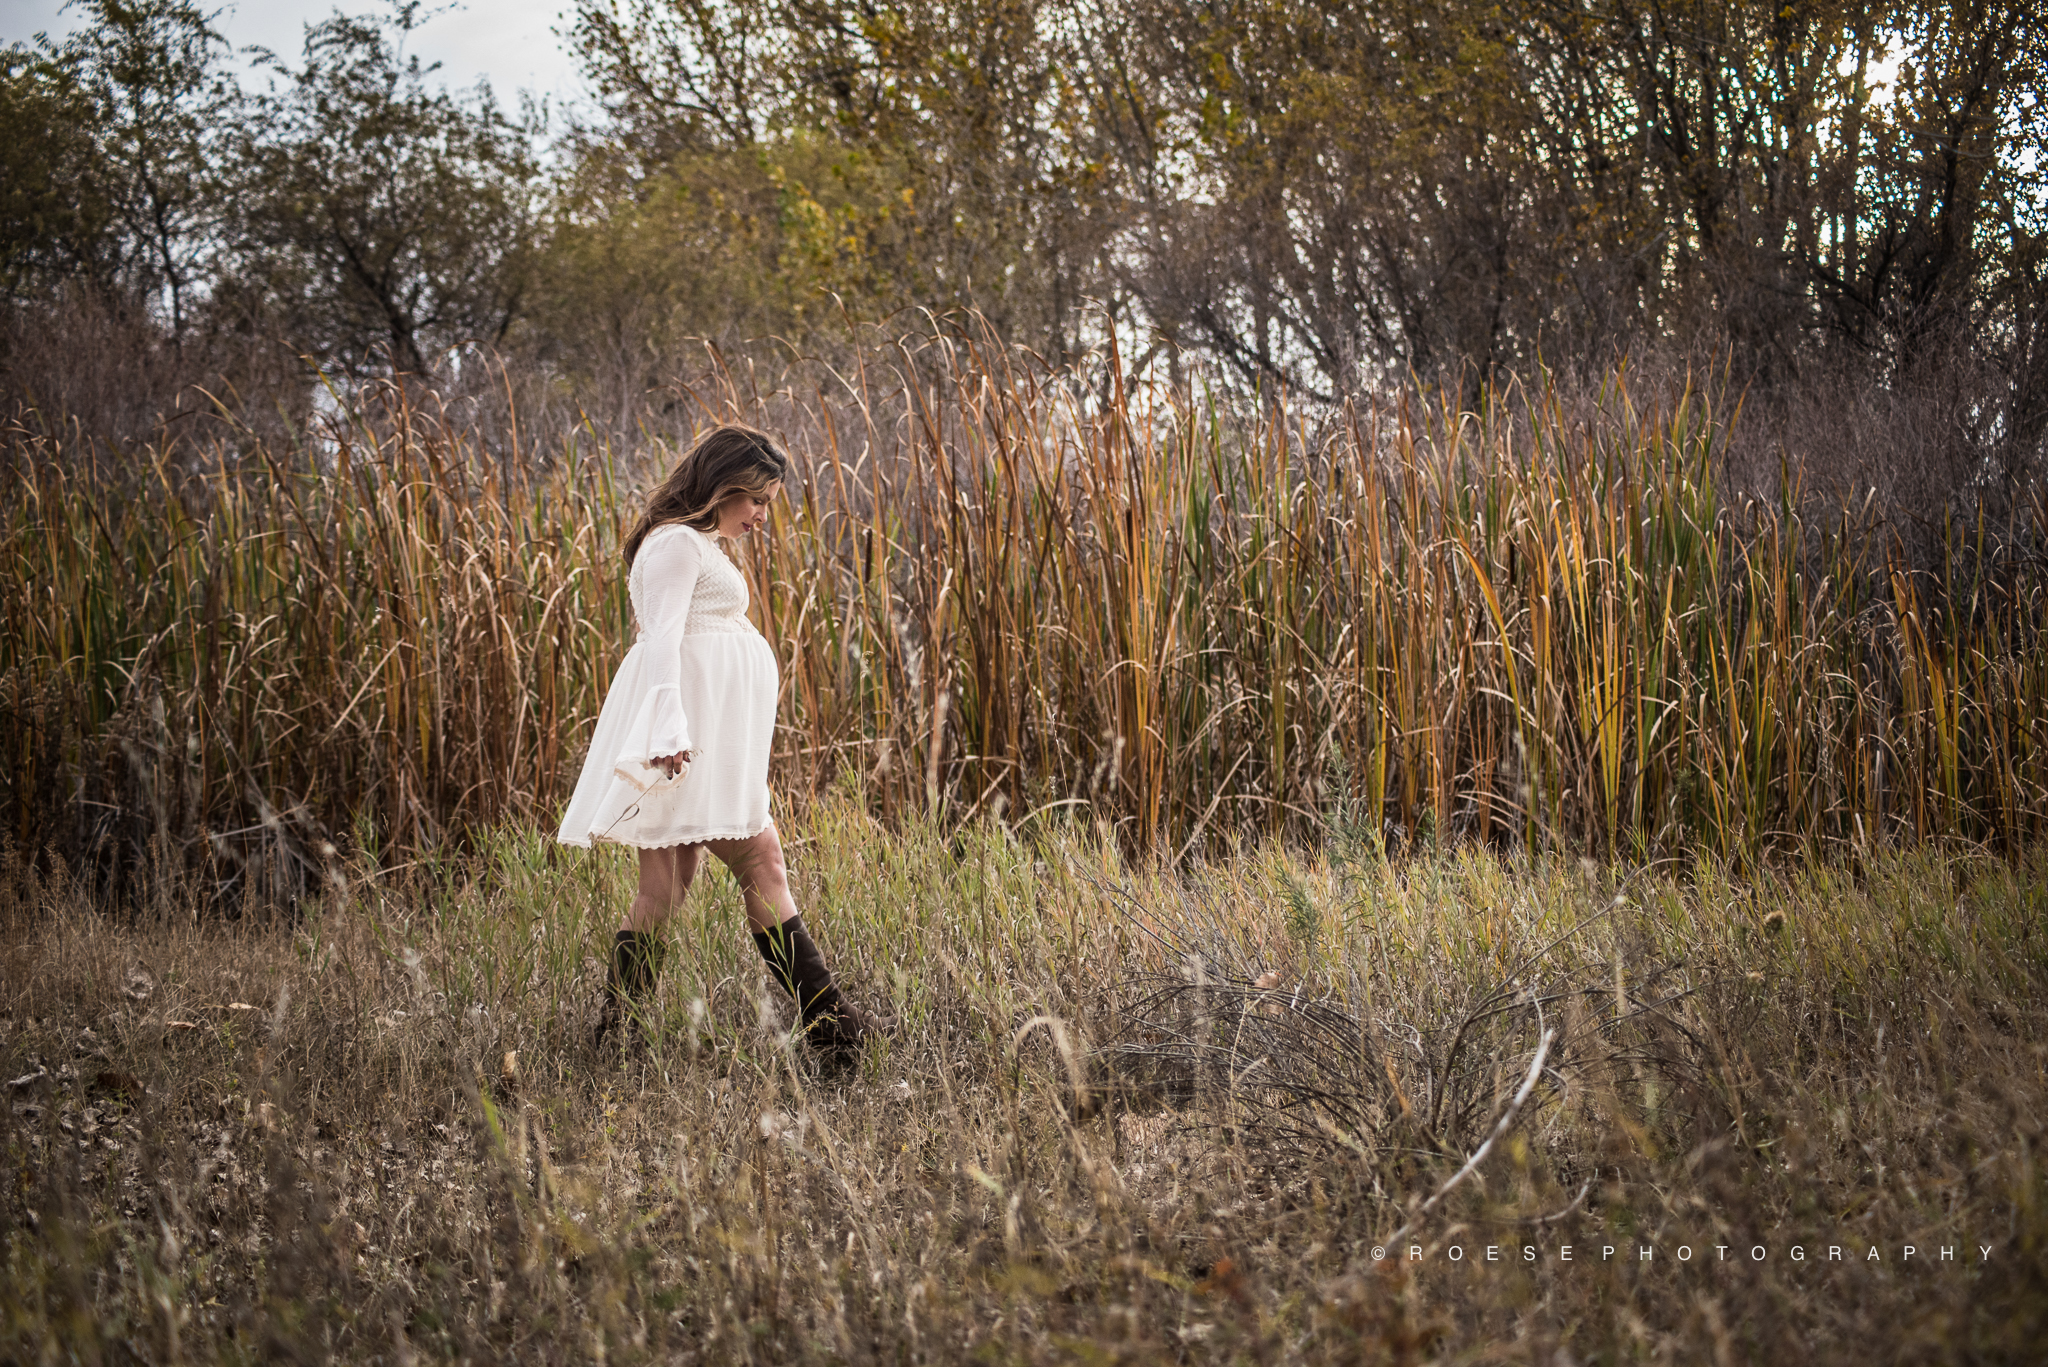 C.-Roese-Ramp-Roese-Photography_jess_colorado_maternity-8.jpg